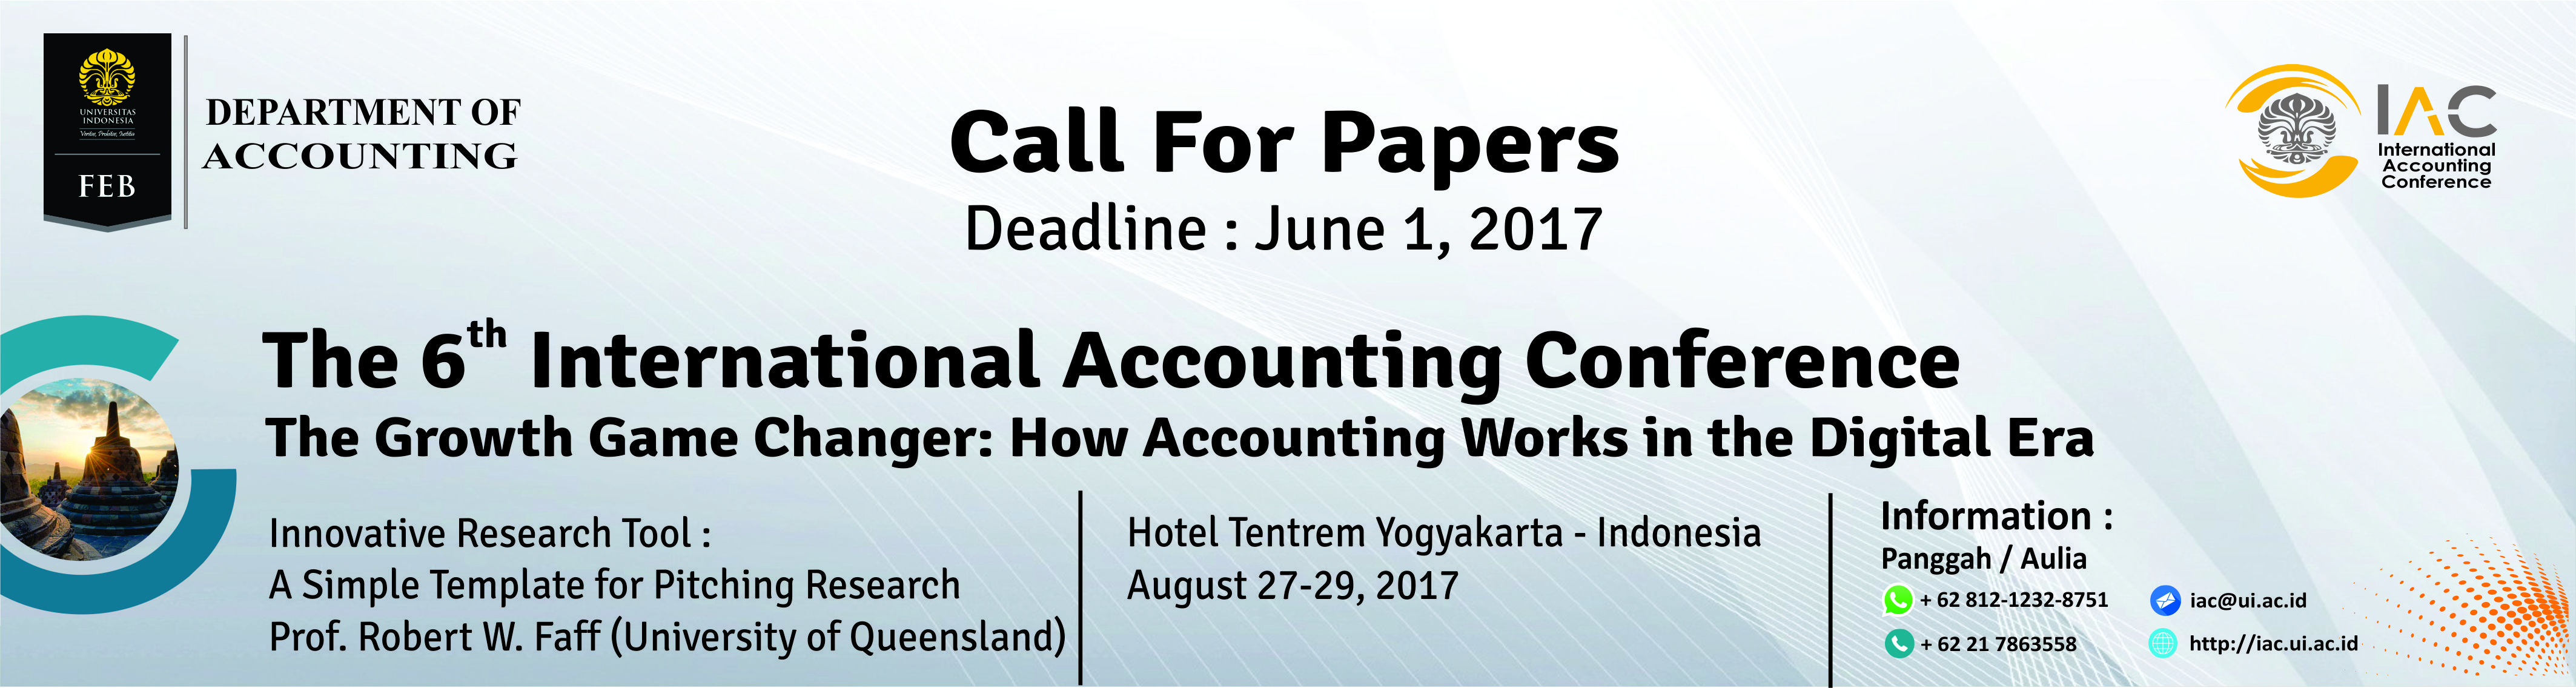 The 6th International Accounting Conference